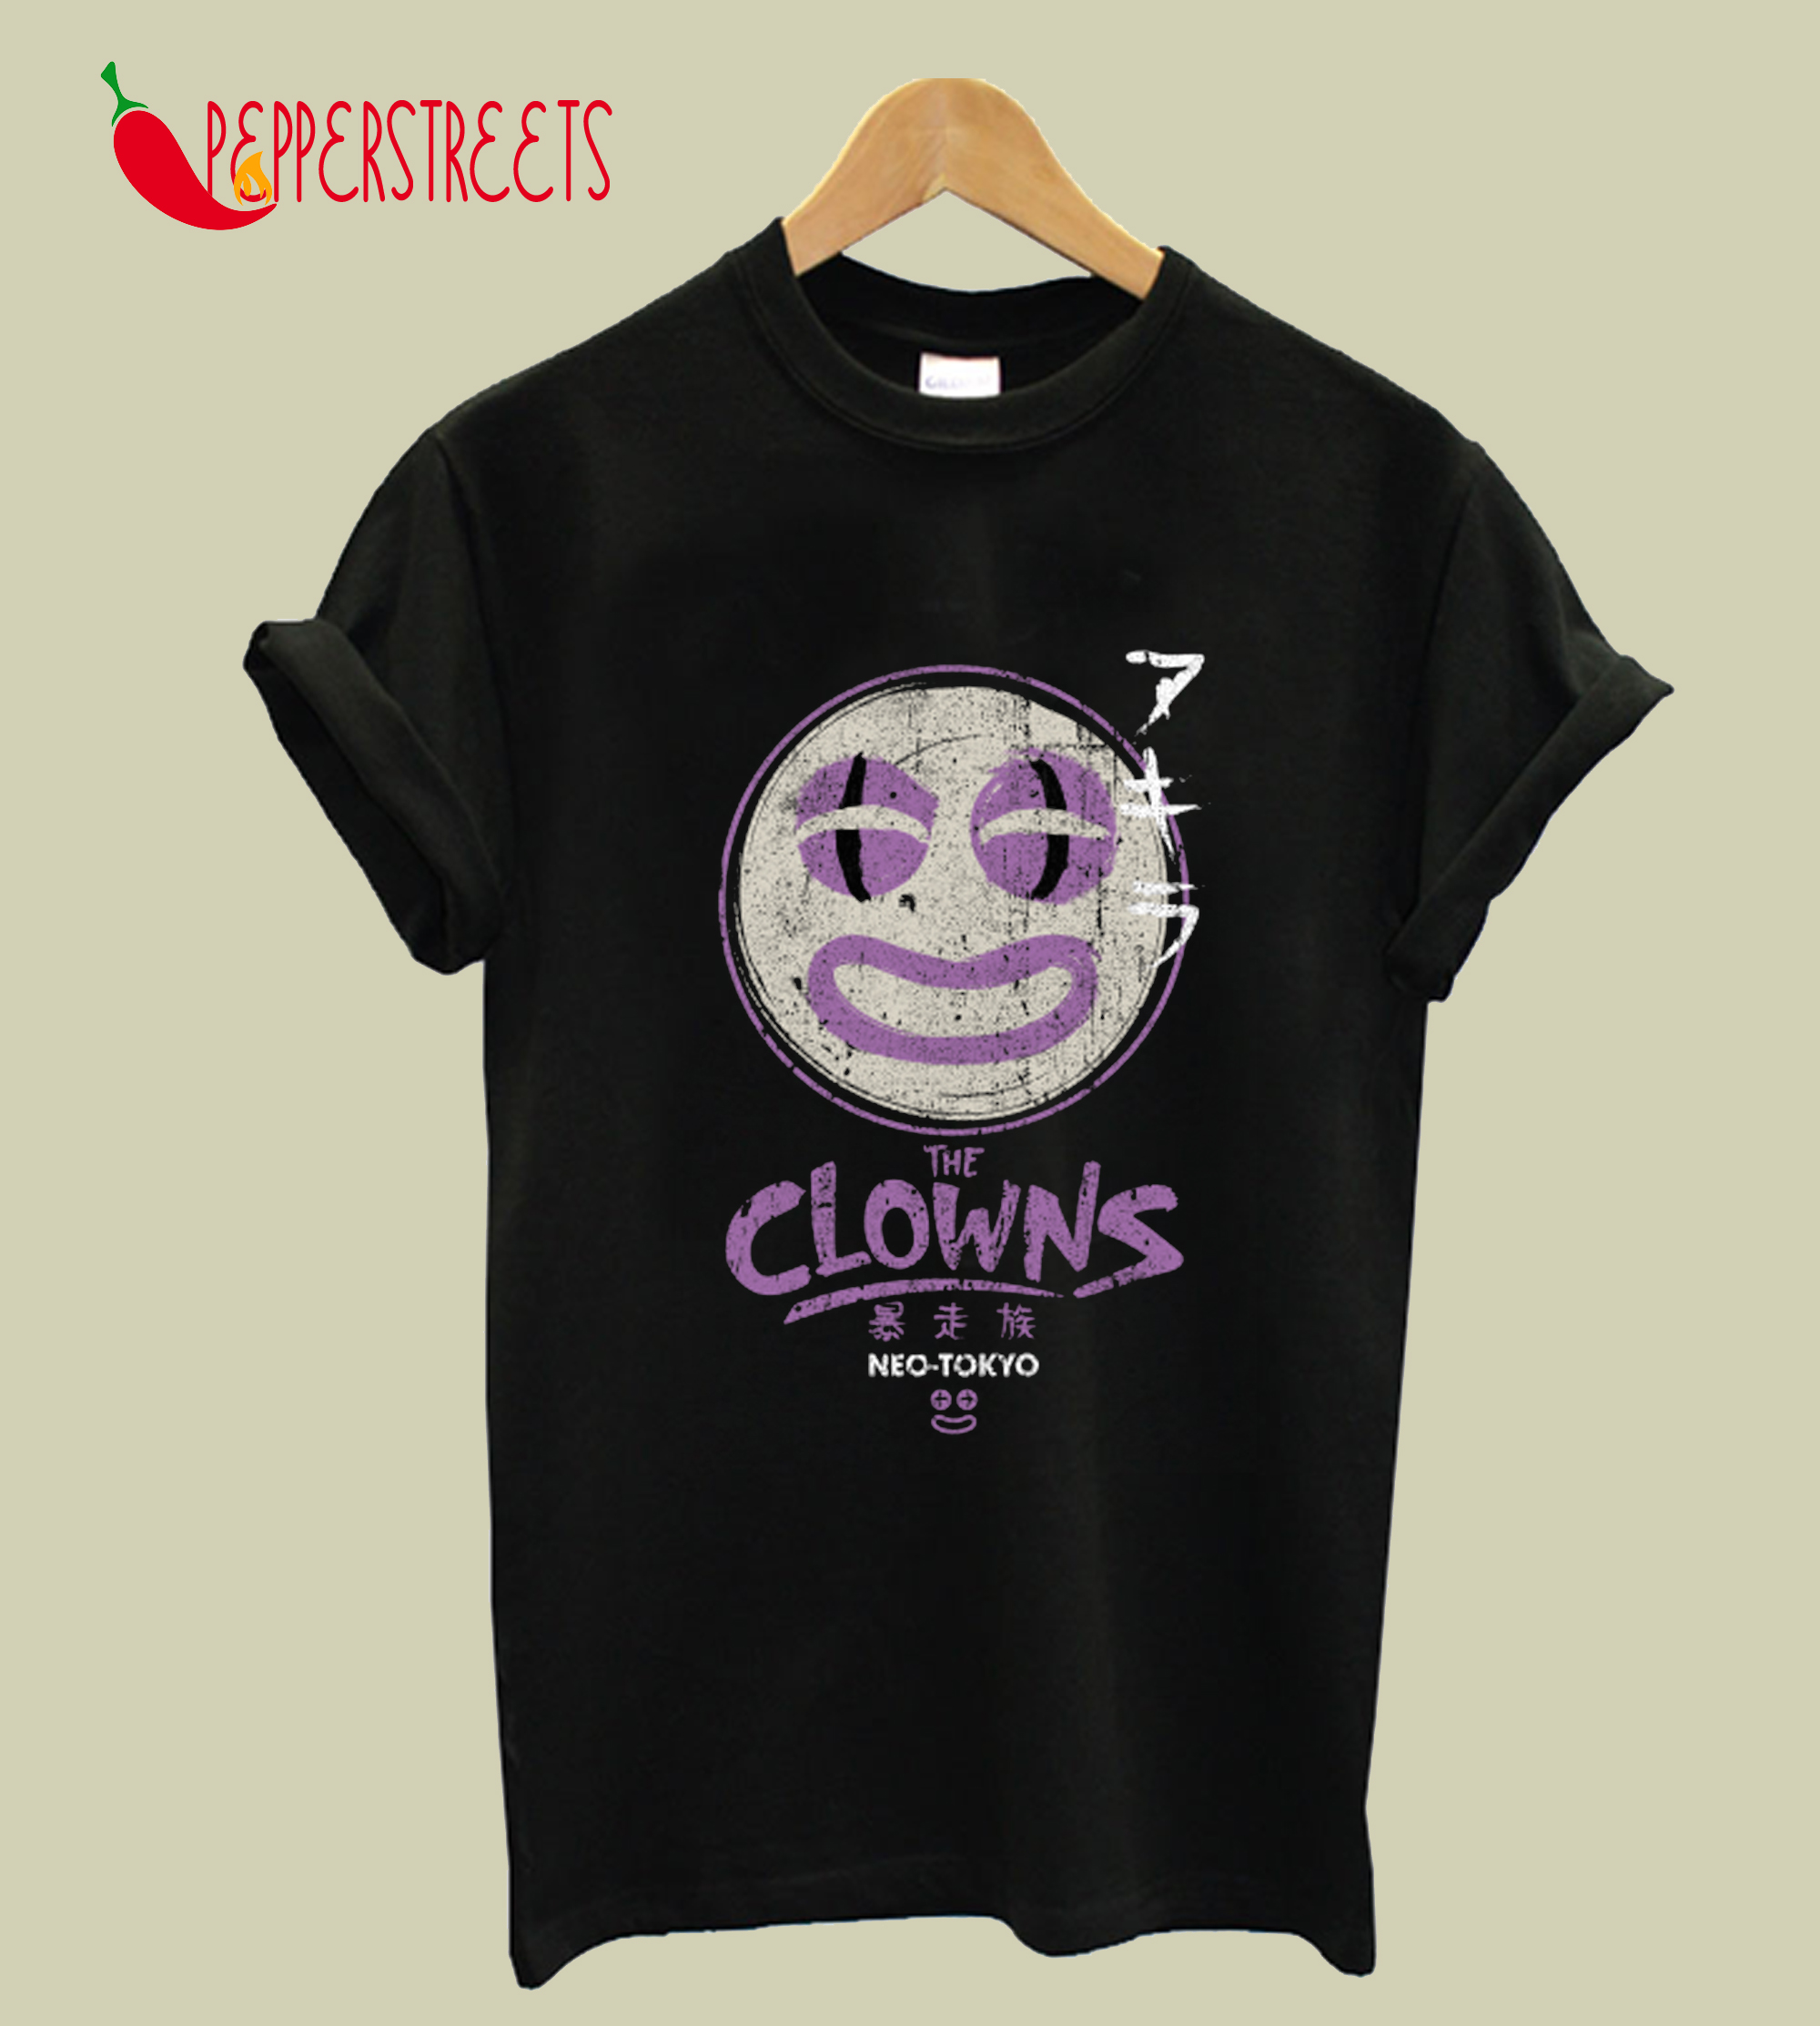 The Clowns Motorcycle Gang T-Shirt